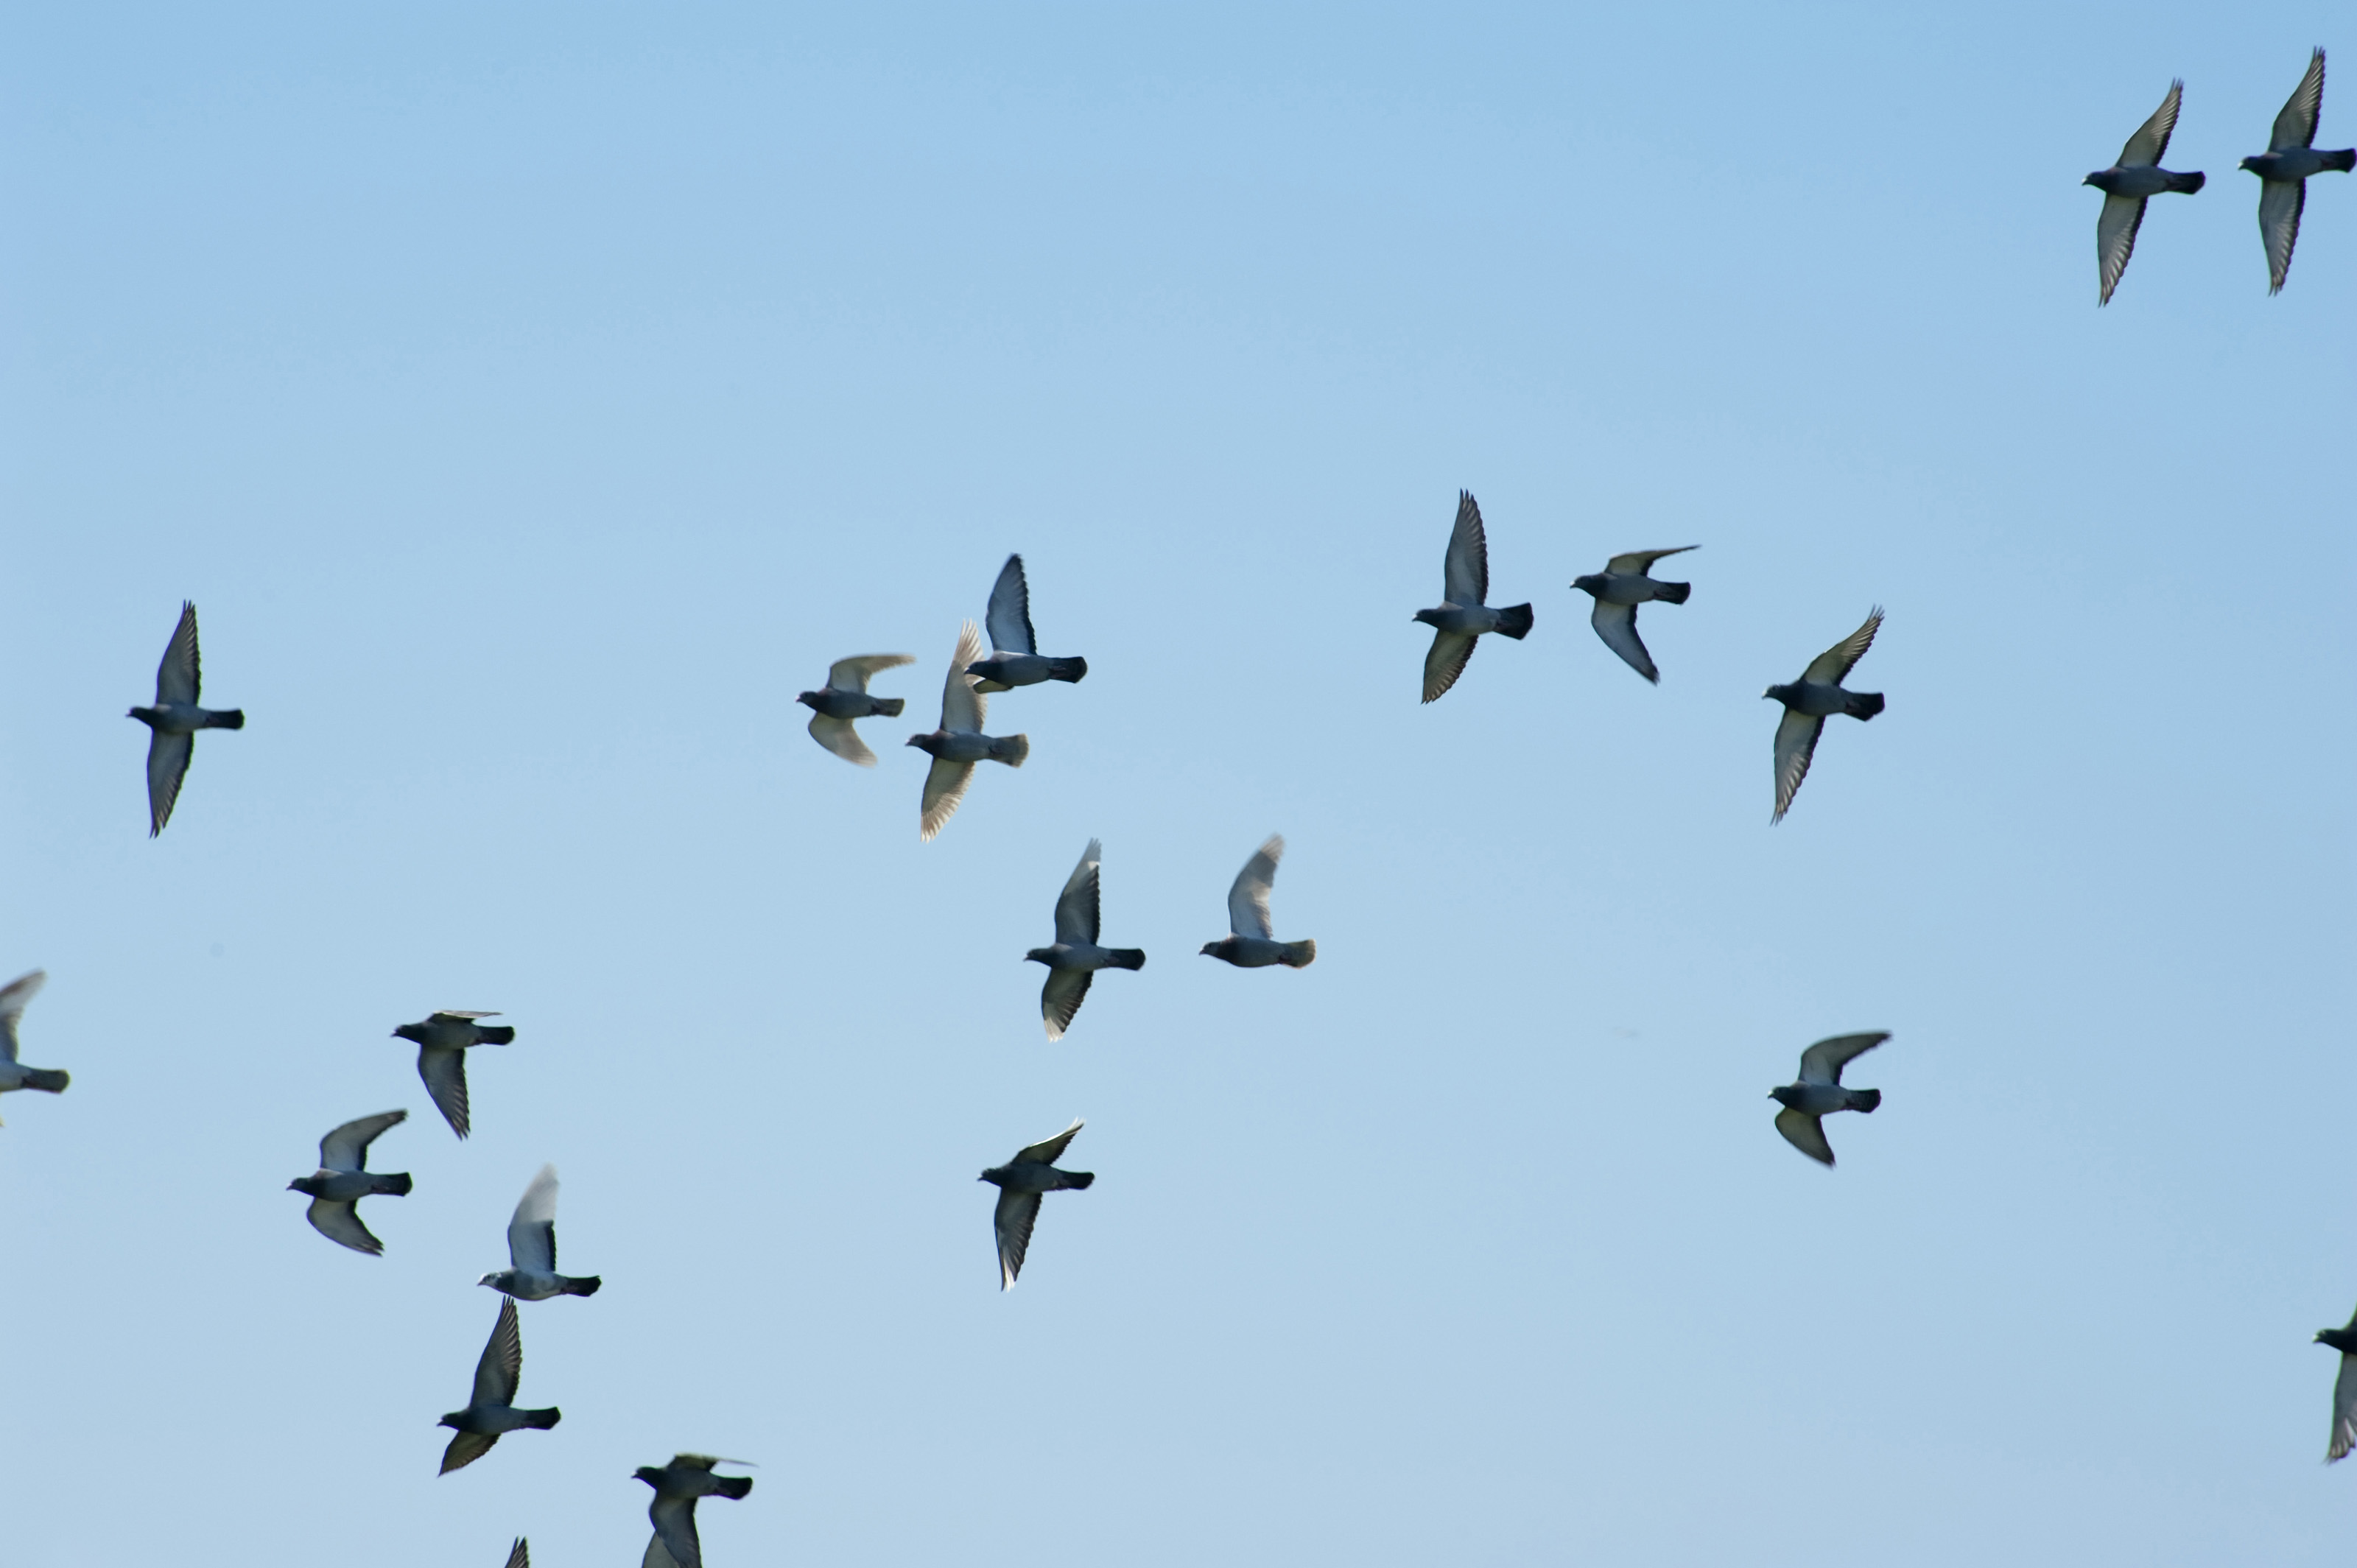 Flying Birds Free Stock Photos Download 3 416 Free Stock: Stockarch Free Stock Photos